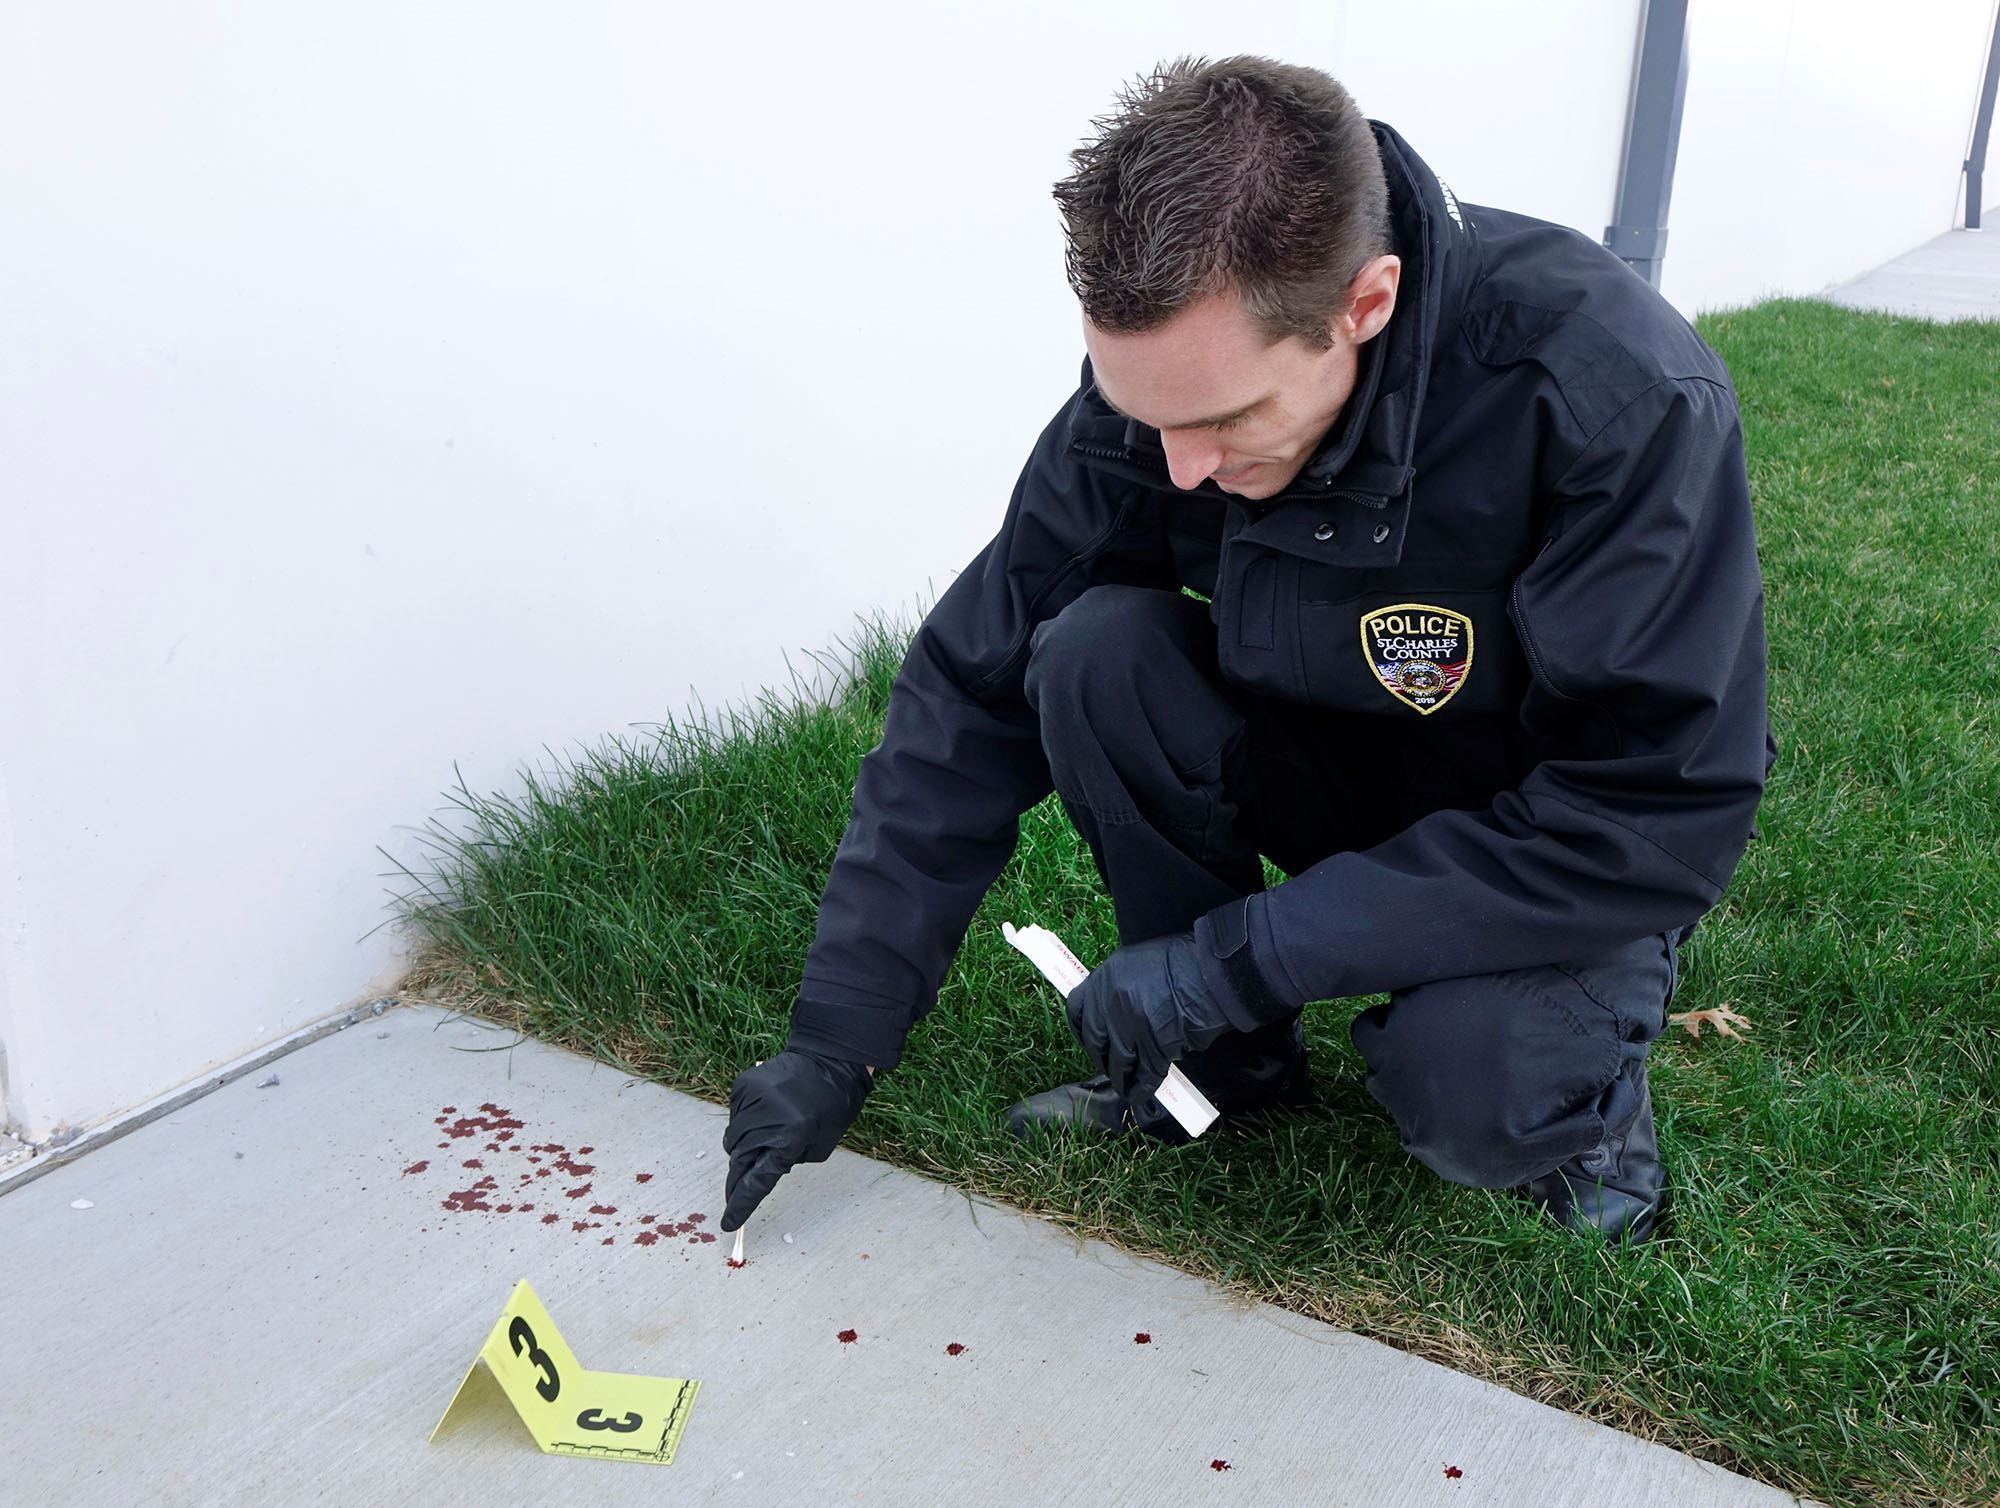 CSI Blood Evidence Marker